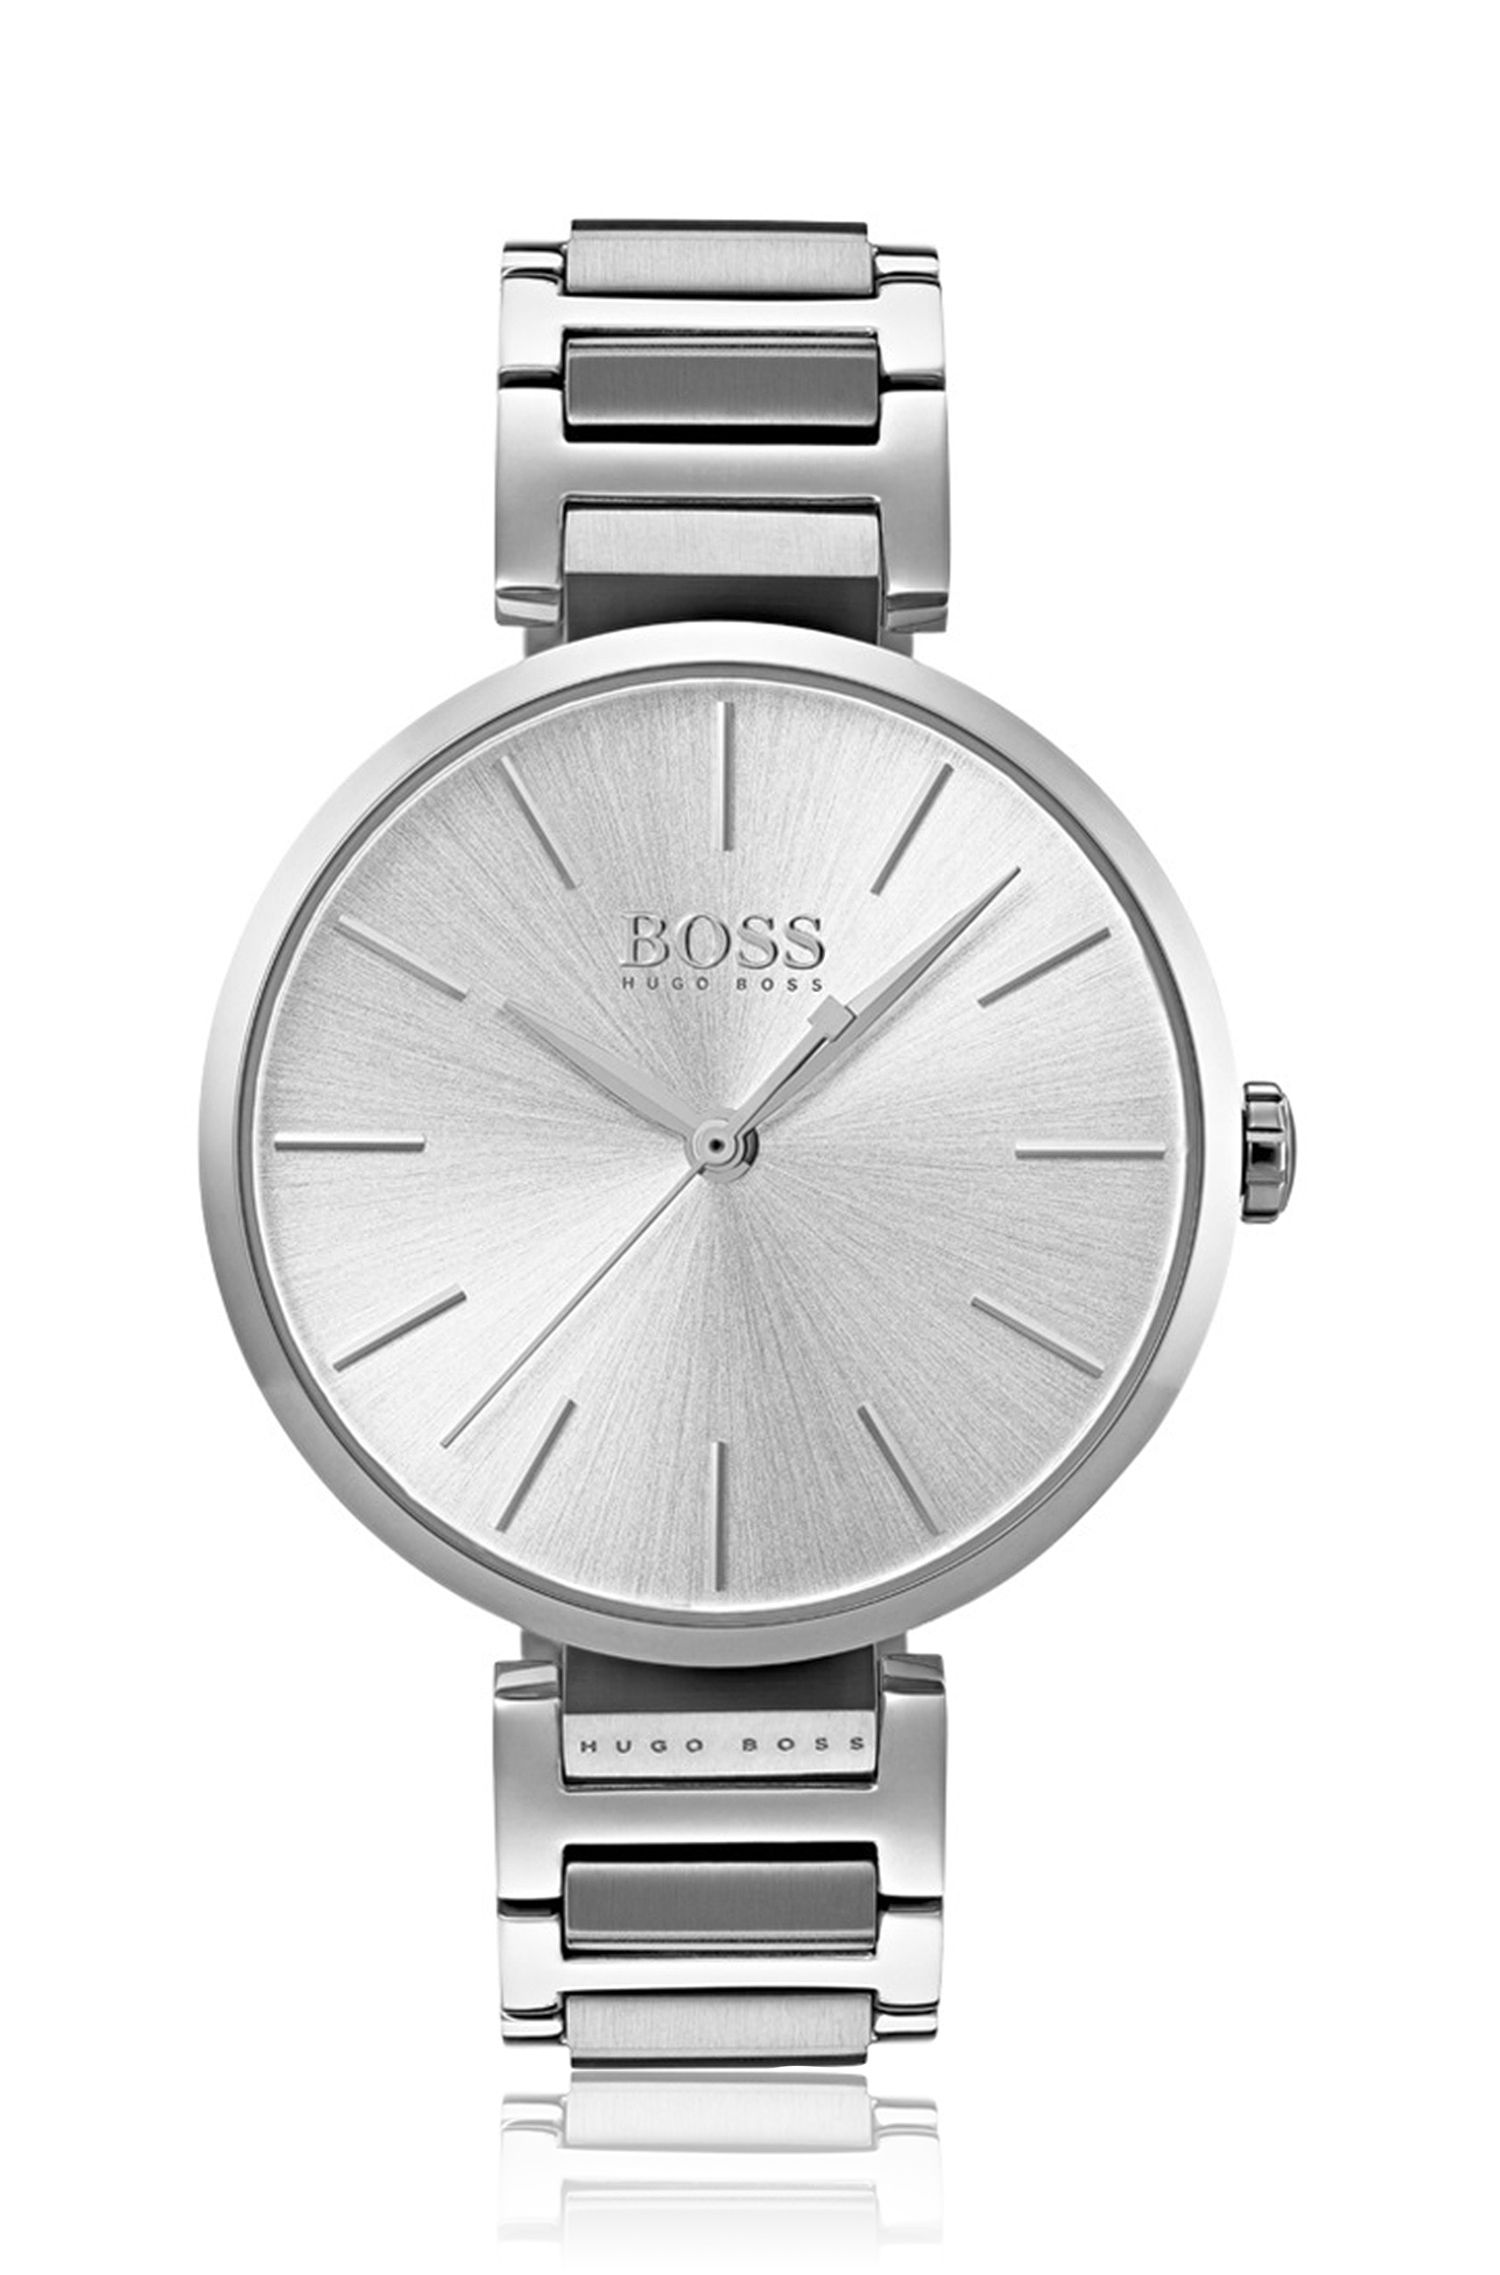 Link-bracelet watch in brushed and polished steel